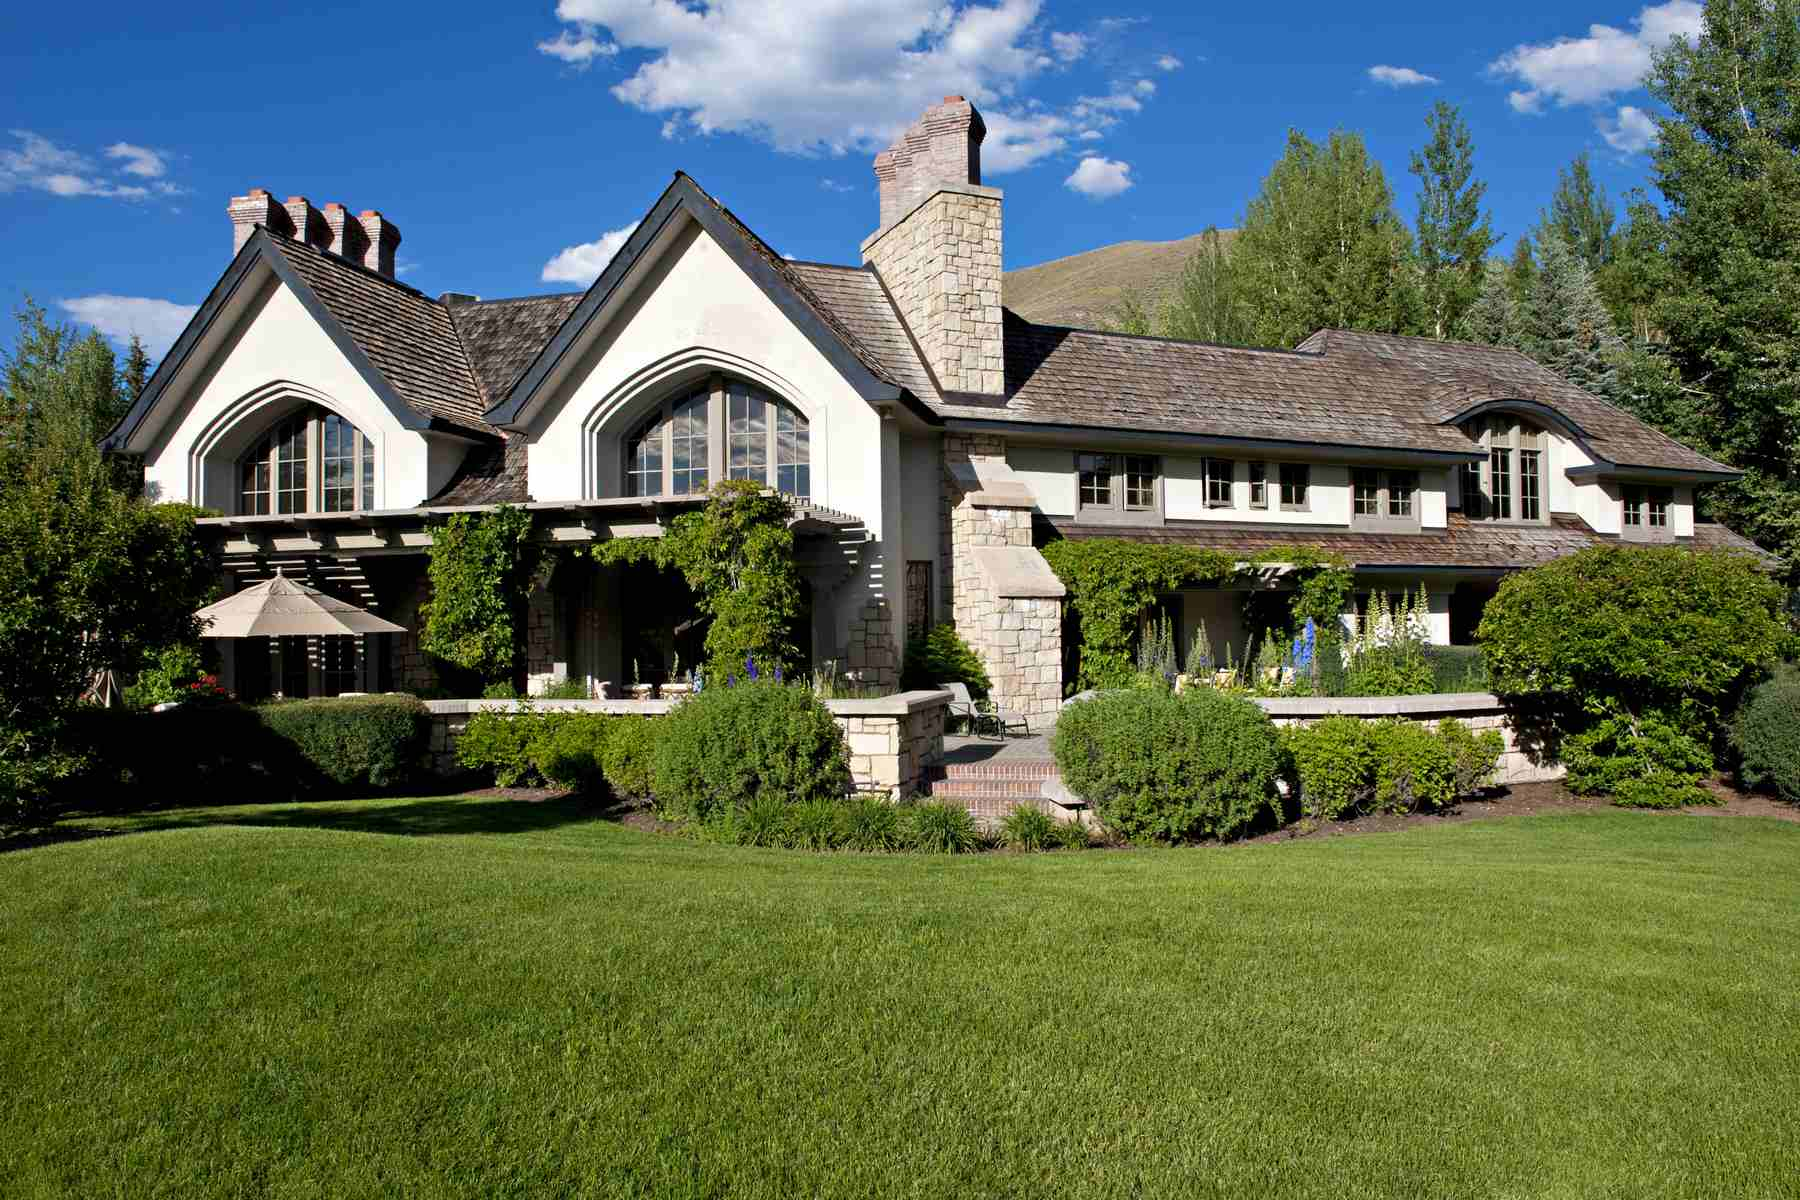 Villa per Vendita alle ore Elegant English Country Manor 101 Wedeln Sun Valley, Idaho, 83340 Stati Uniti